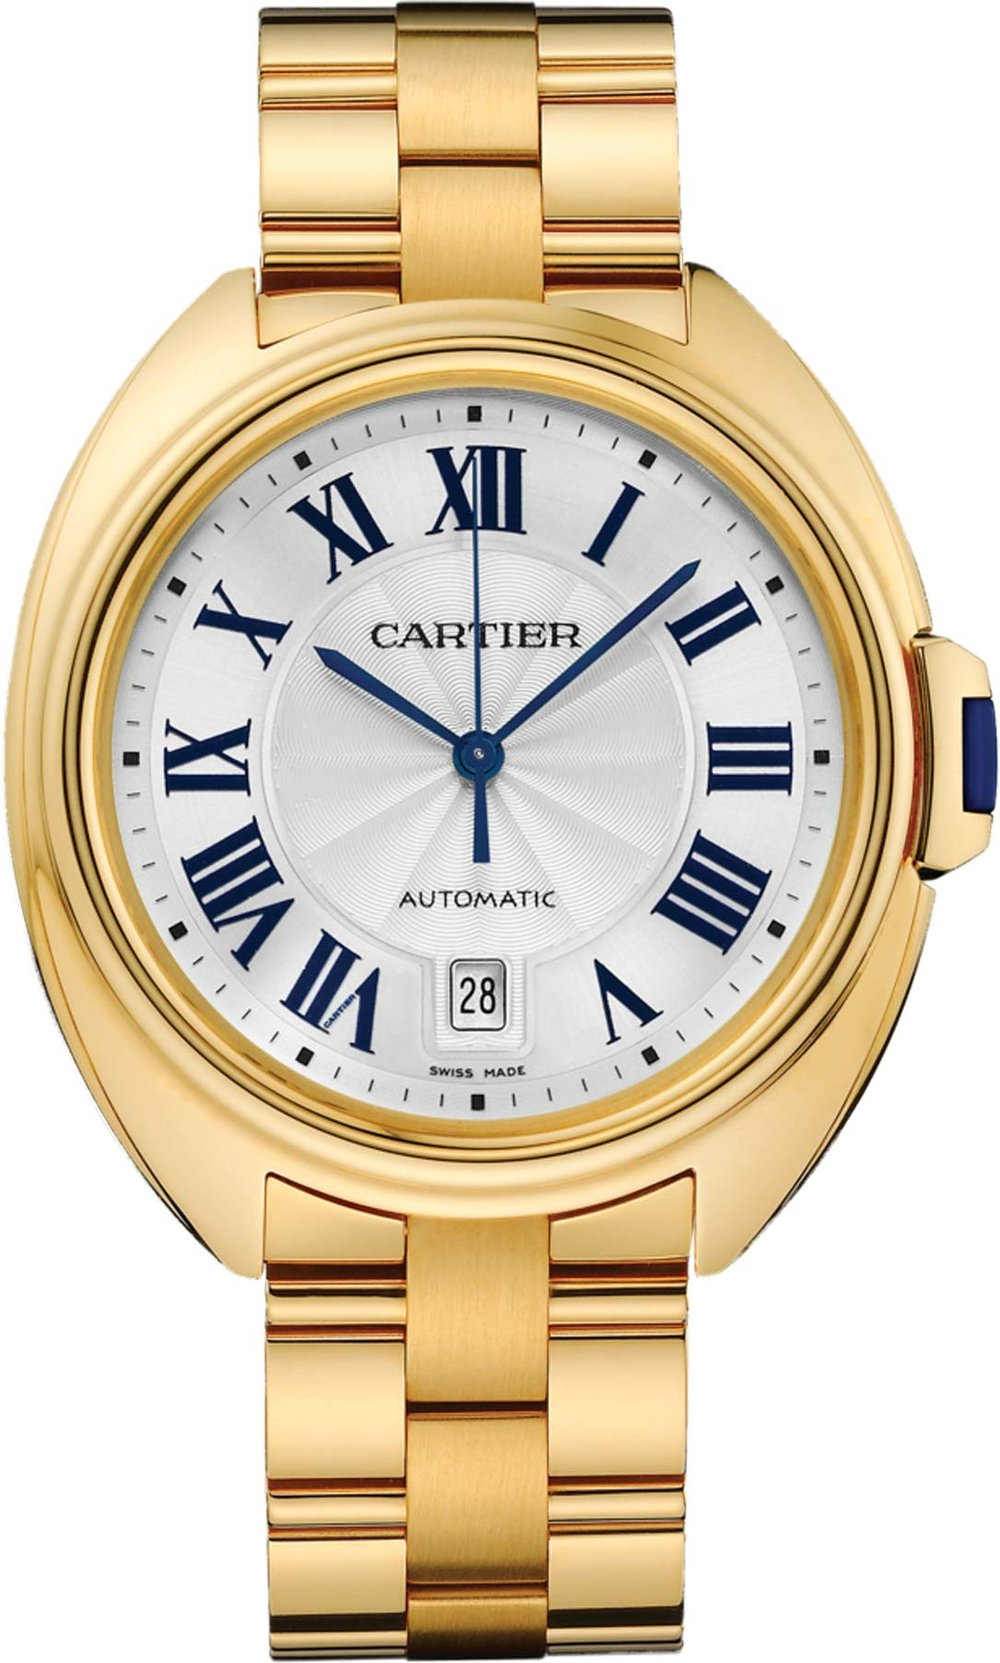 Clé de Cartier Watch by Cartier